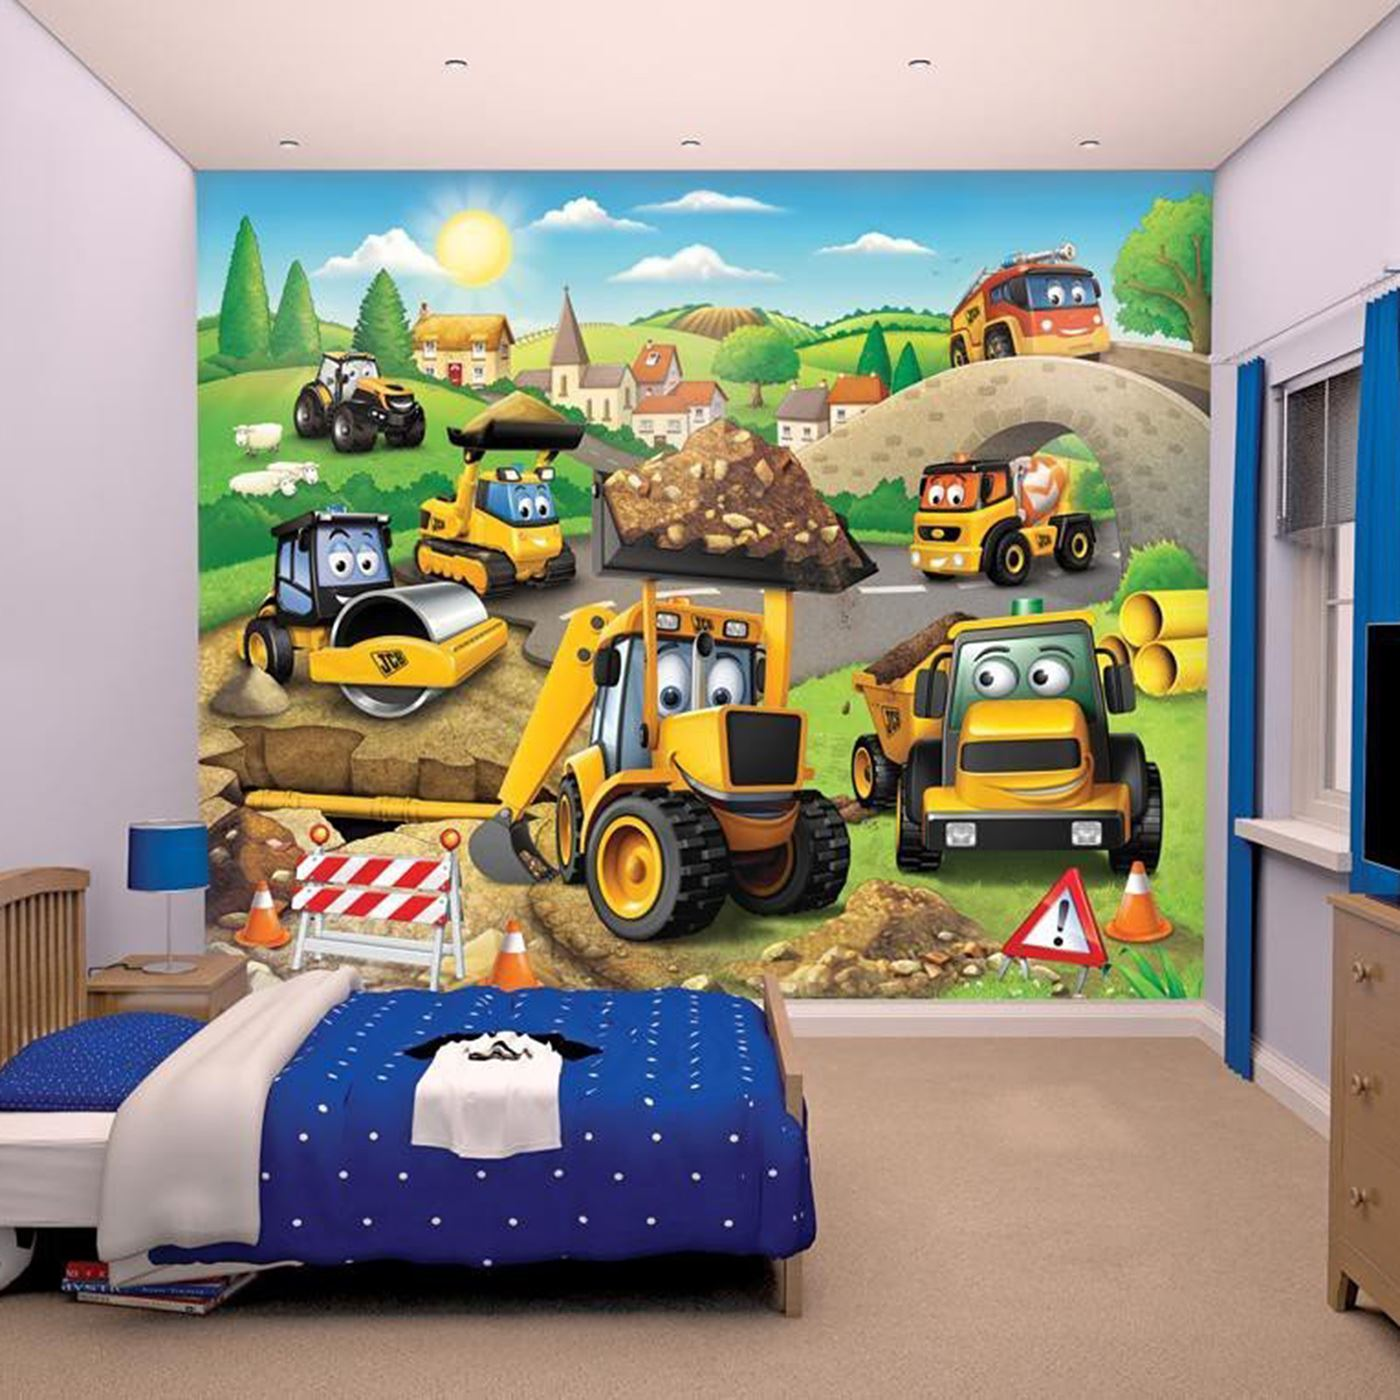 thomas wallpaper mural images. Black Bedroom Furniture Sets. Home Design Ideas